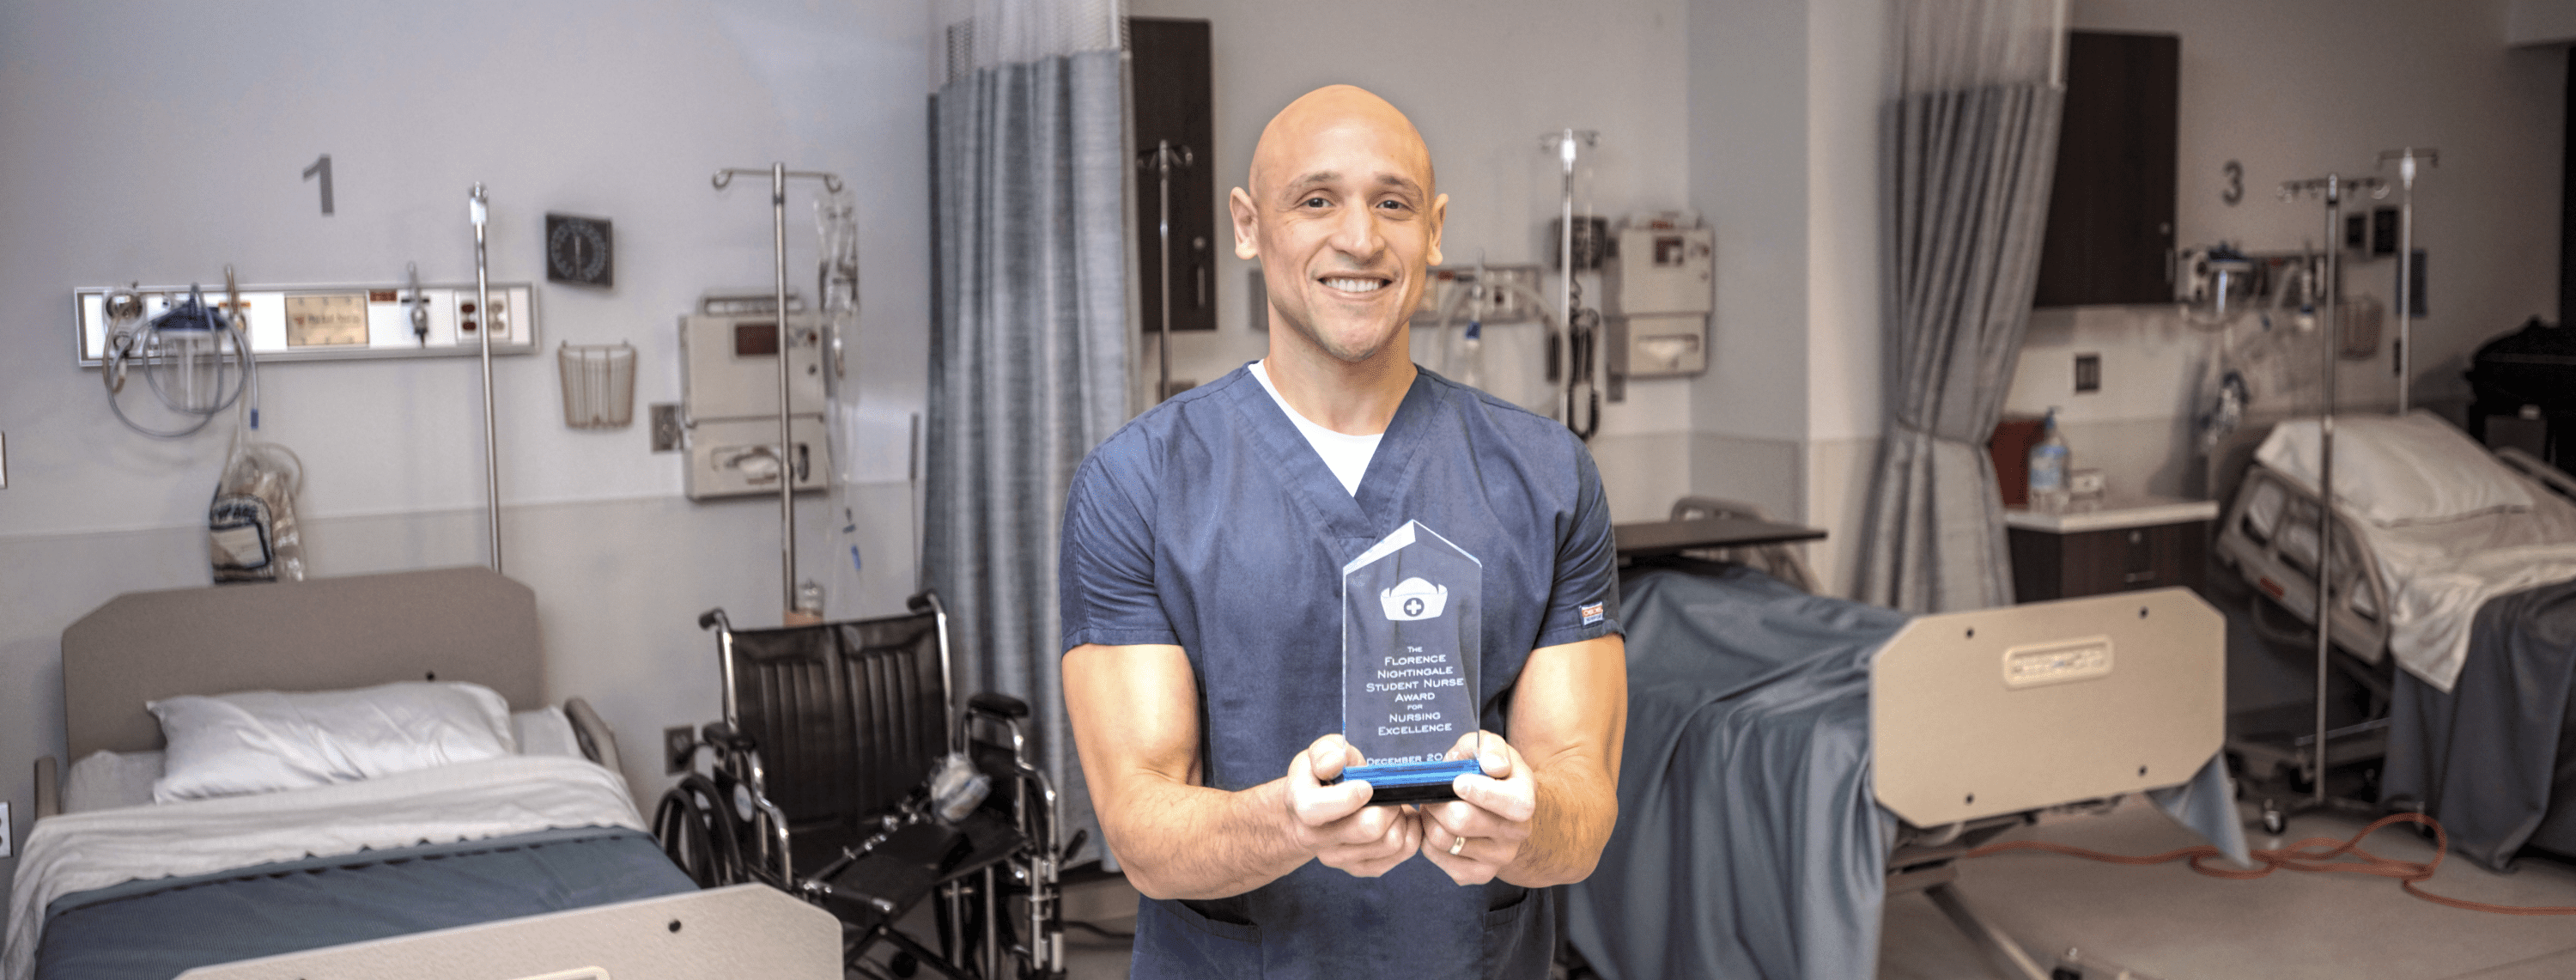 Jimmy Lopez - man in medical scrubs holding a glass award